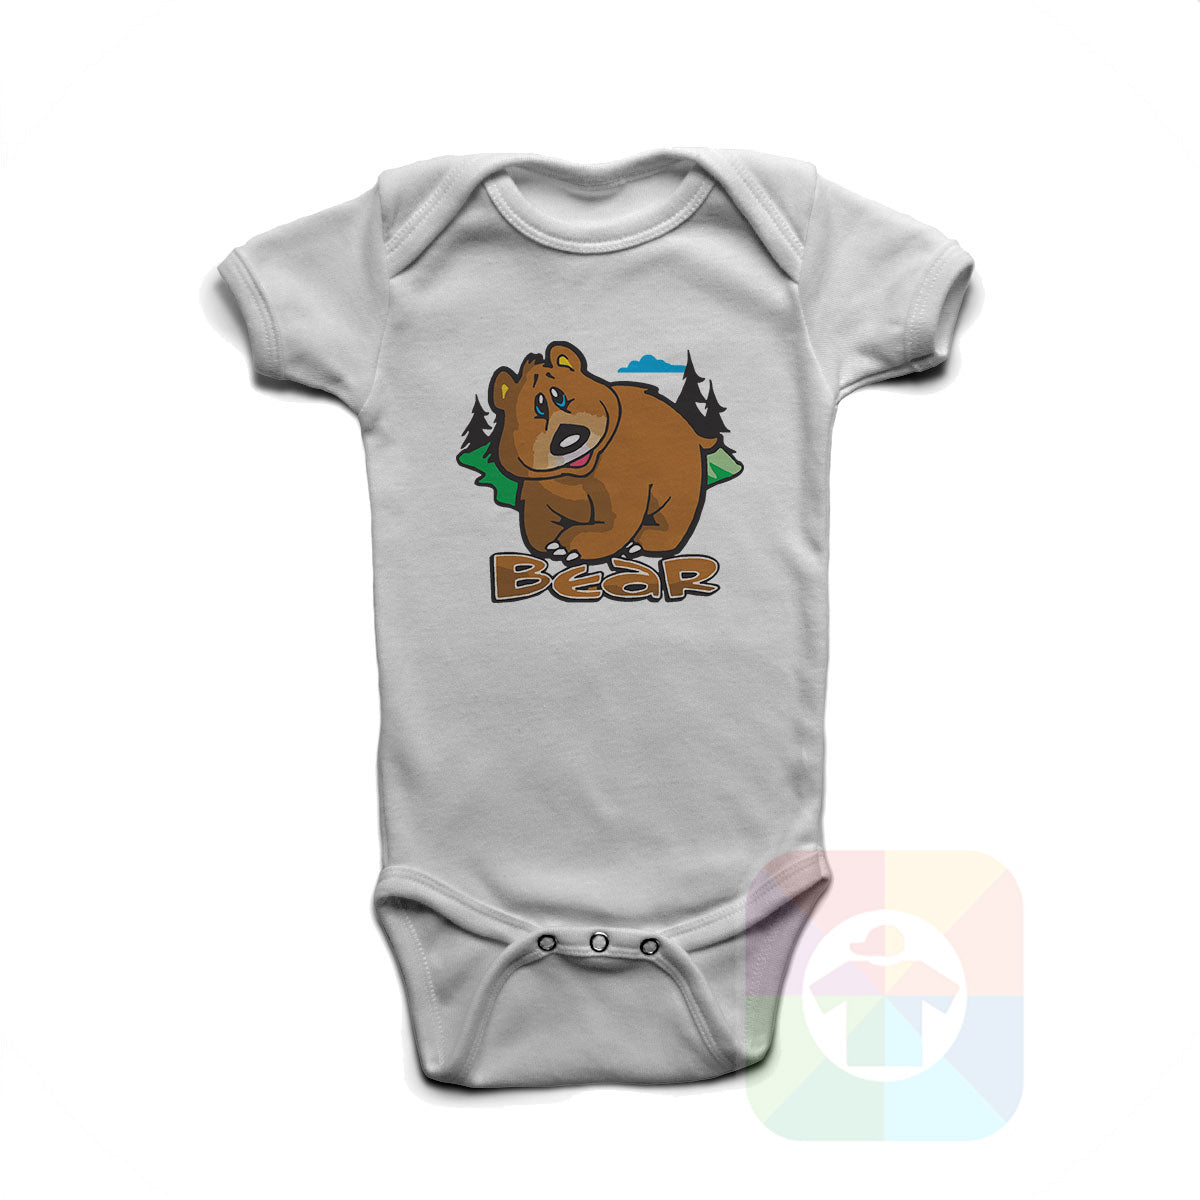 A WHITE Baby Onesie with the  ' Baby onesie 'ANIMALS BEAR' kids funny novelty design. #8005 / New Born, 6m, 12m, 24m Sizes ' design.